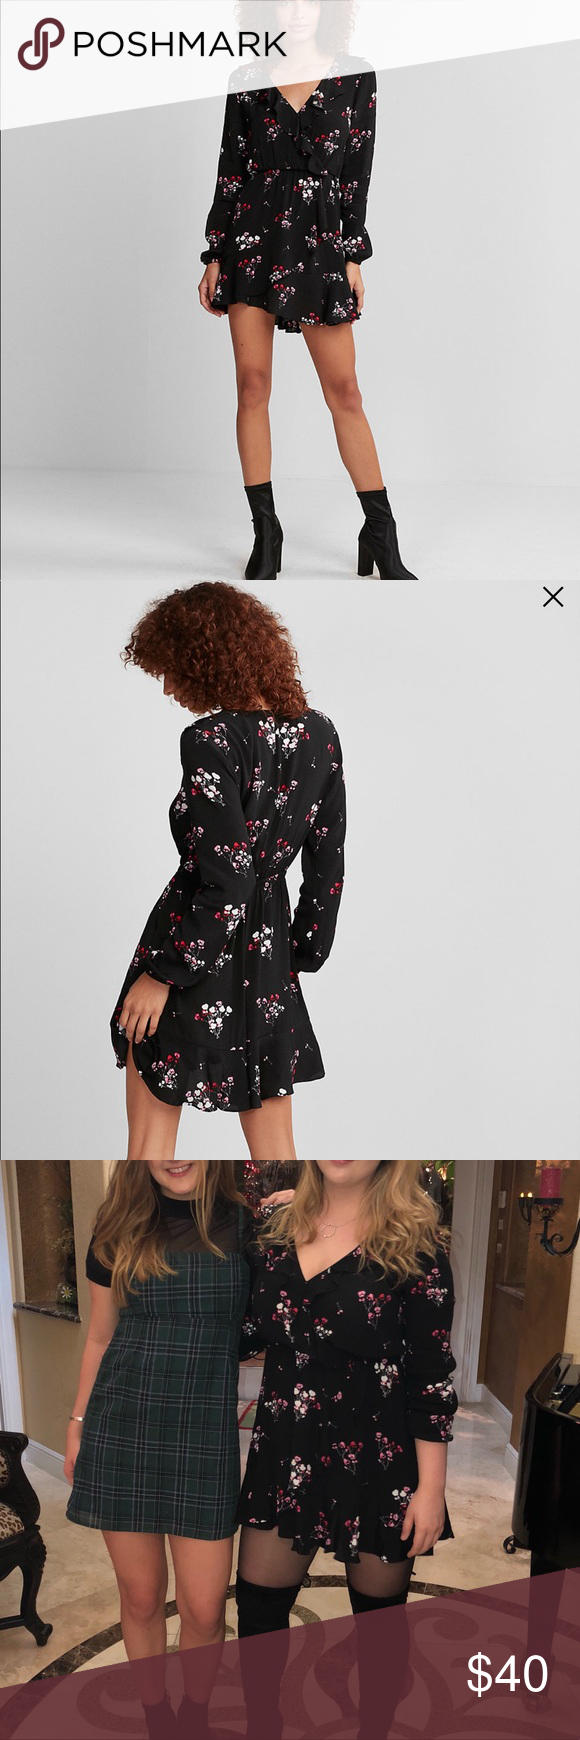 Long sleeve express dress express dresses small flowers and